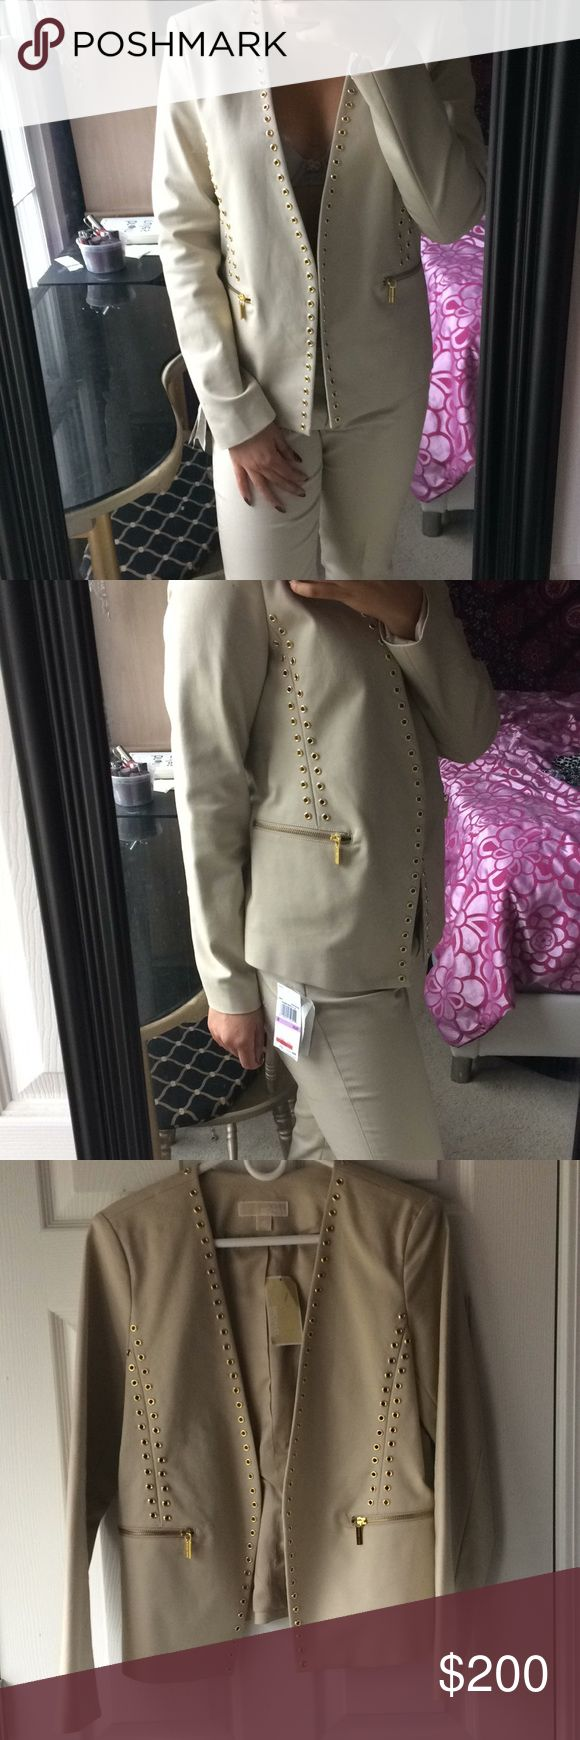 Michael Kors Cream pant suit Michael Kors cream pant suit with gold accents on the blazer and gold chains on the pants. Blazer is a size 12 and pants are a size 6. I'm a size 6 for reference. ❌no trades❌ reasonable offers accepted through offer button MICHAEL Michael Kors Jackets & Coats Blazers